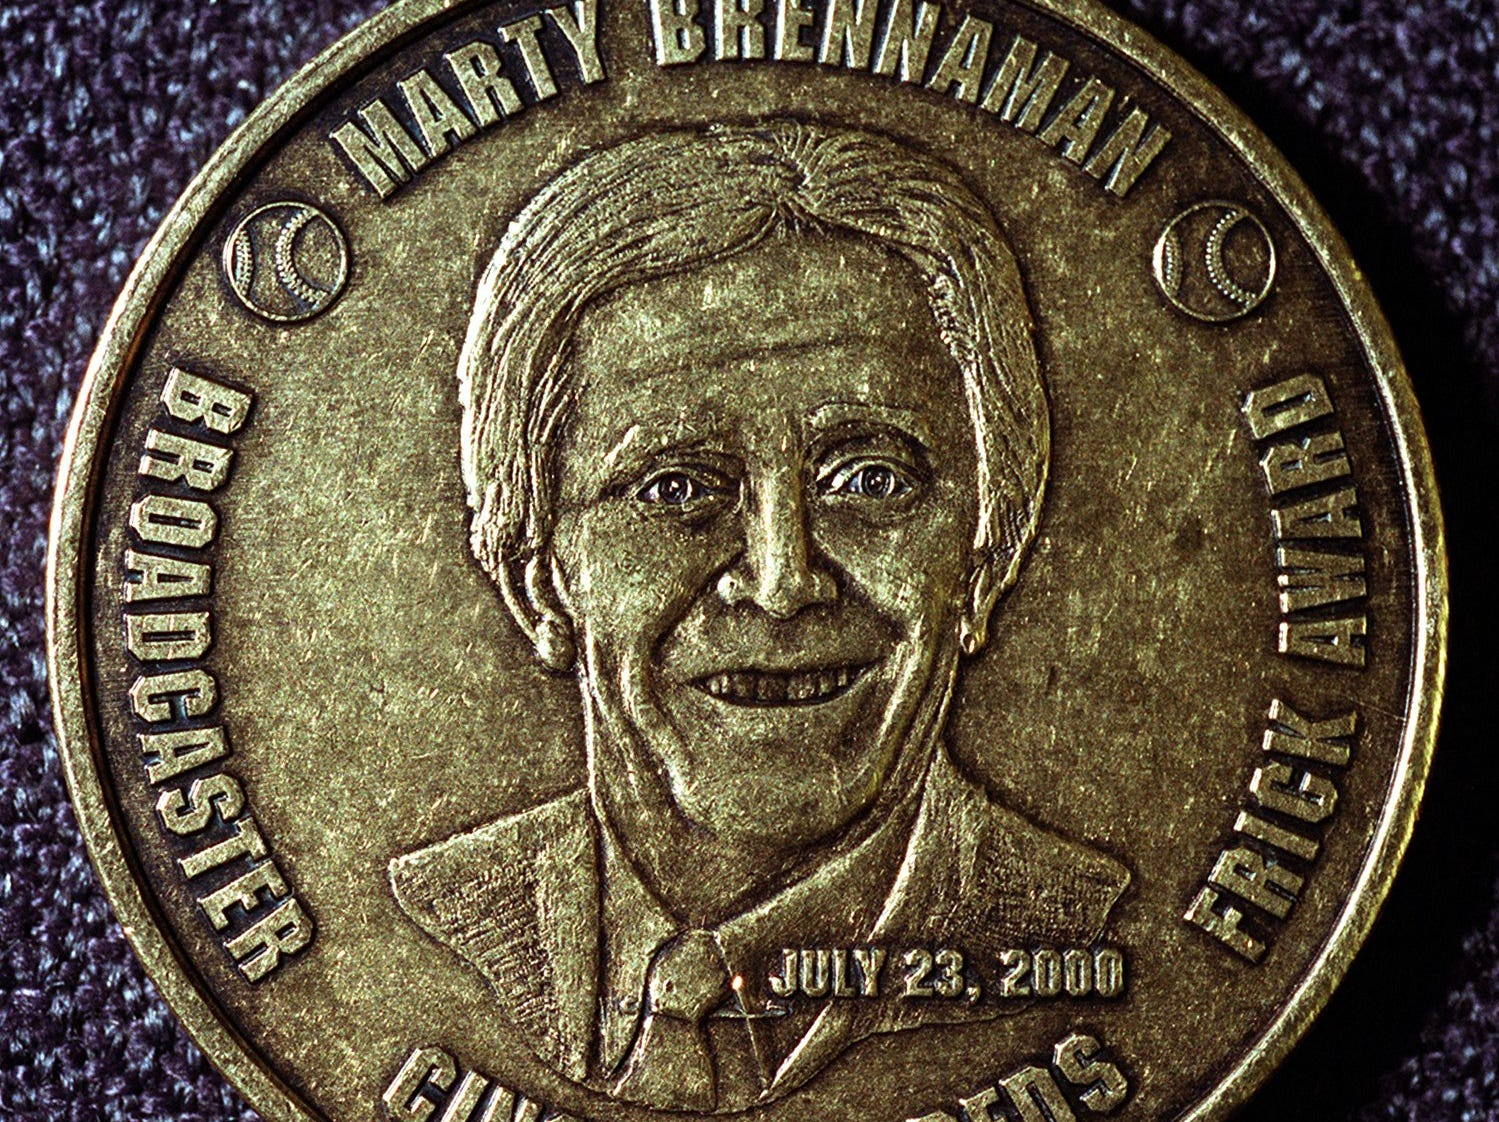 Text: 2000.0720.11.2 COINS-METRO: Osborne Coinage in Camp Washington is producing 250,000 coins of Marty Brennaman, Sparky Anderson and Tony Perez which will be sold for $1.99 each at area Kroger stores. Marty comes out Sunday. Tony and Sparky will be available in two weeks. This is a complete Marty coin (neither Tony nor Sparky were complete for photos). Photo by Glenn Hartong/The Cincinnati Enquirer. gh.